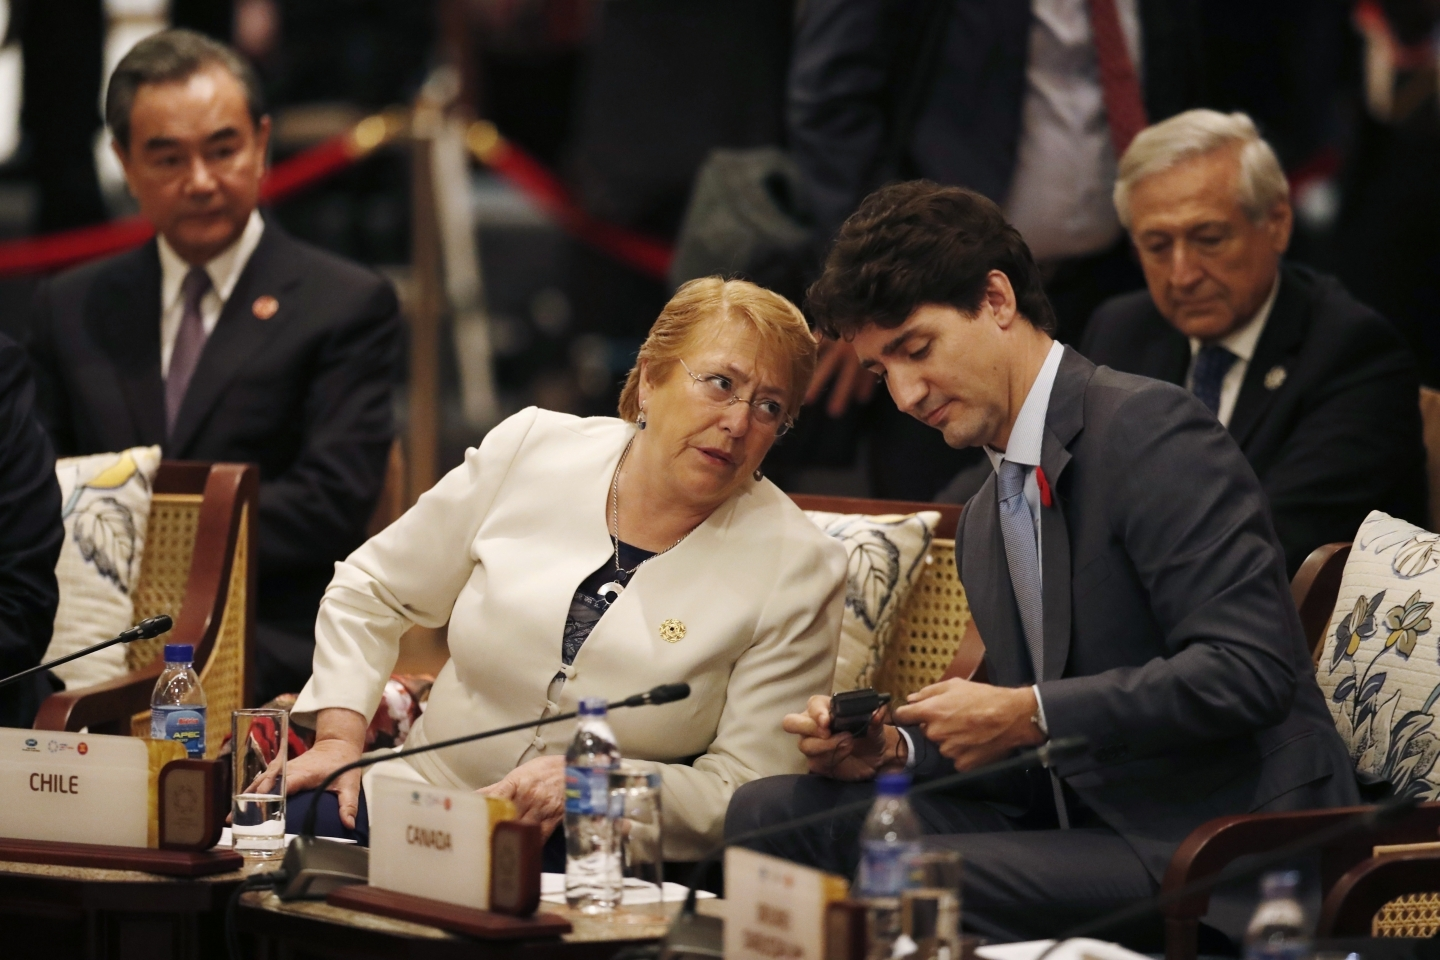 Prime Minister Justin Trudeau speaks with Chile's former president, Michelle Bachelet; both leaders have championed gender-considerate trade pacts. (Jorge Silva/AP Photo)